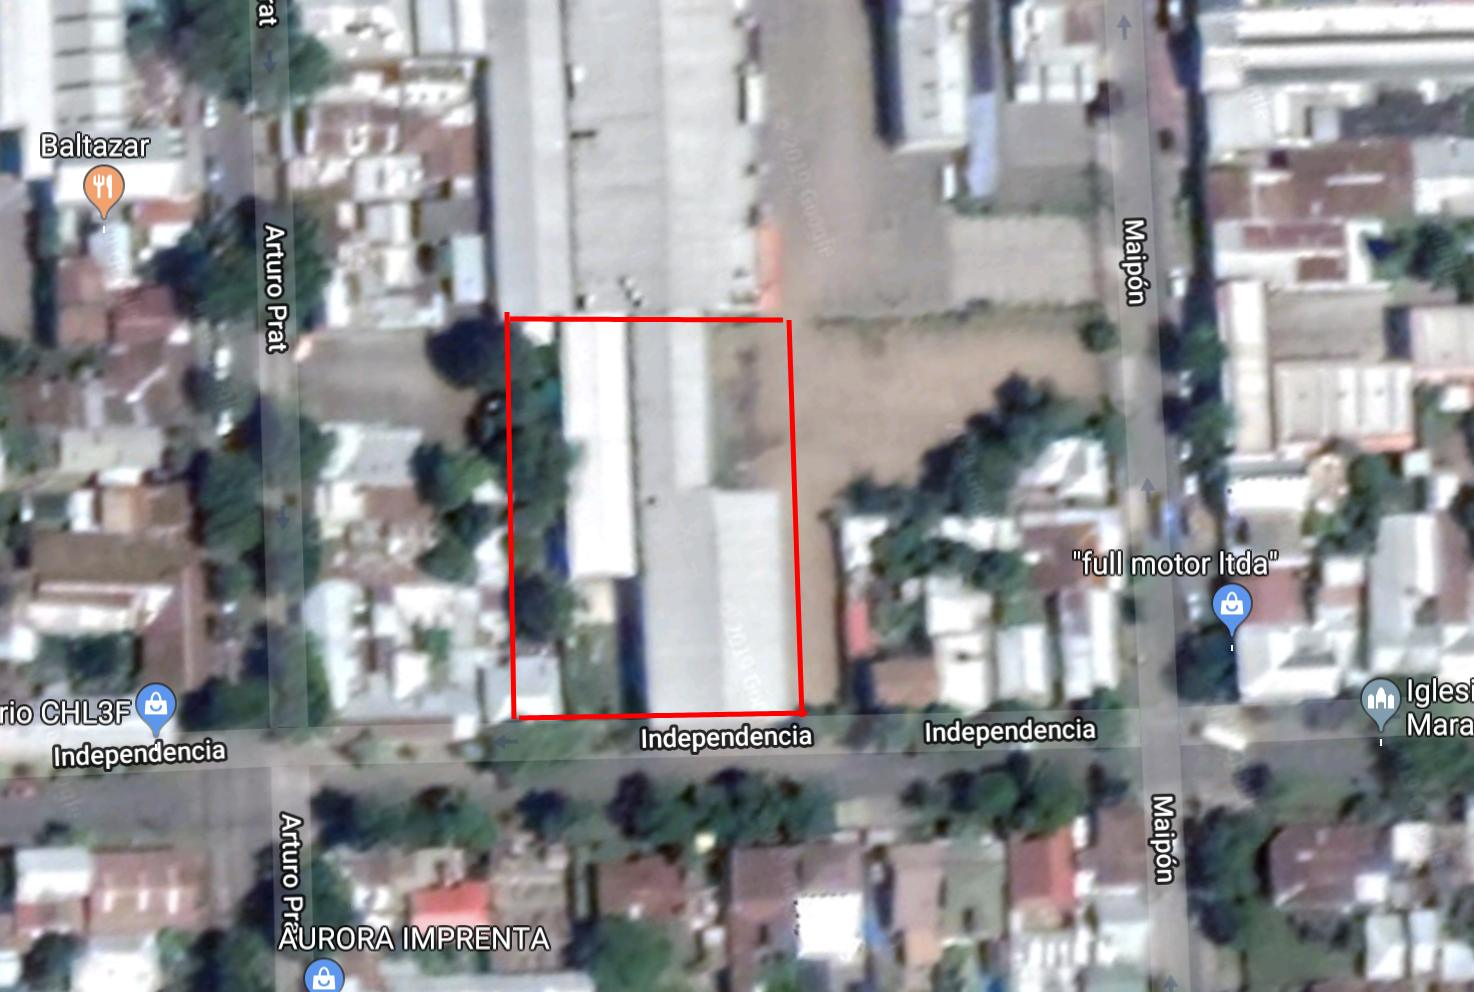 Venta Terreno en Independencia – Arturo Prat, Chillán